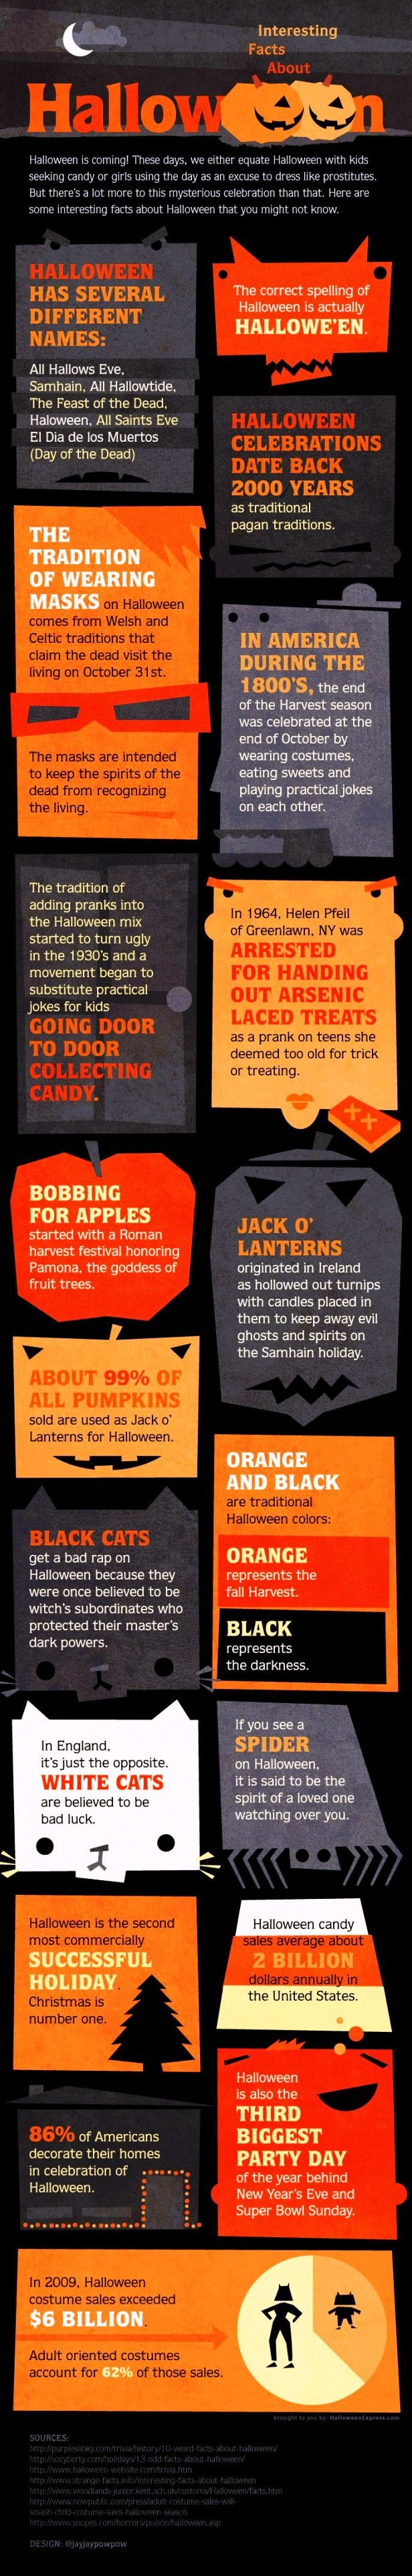 interesting facts about halloween #infographic